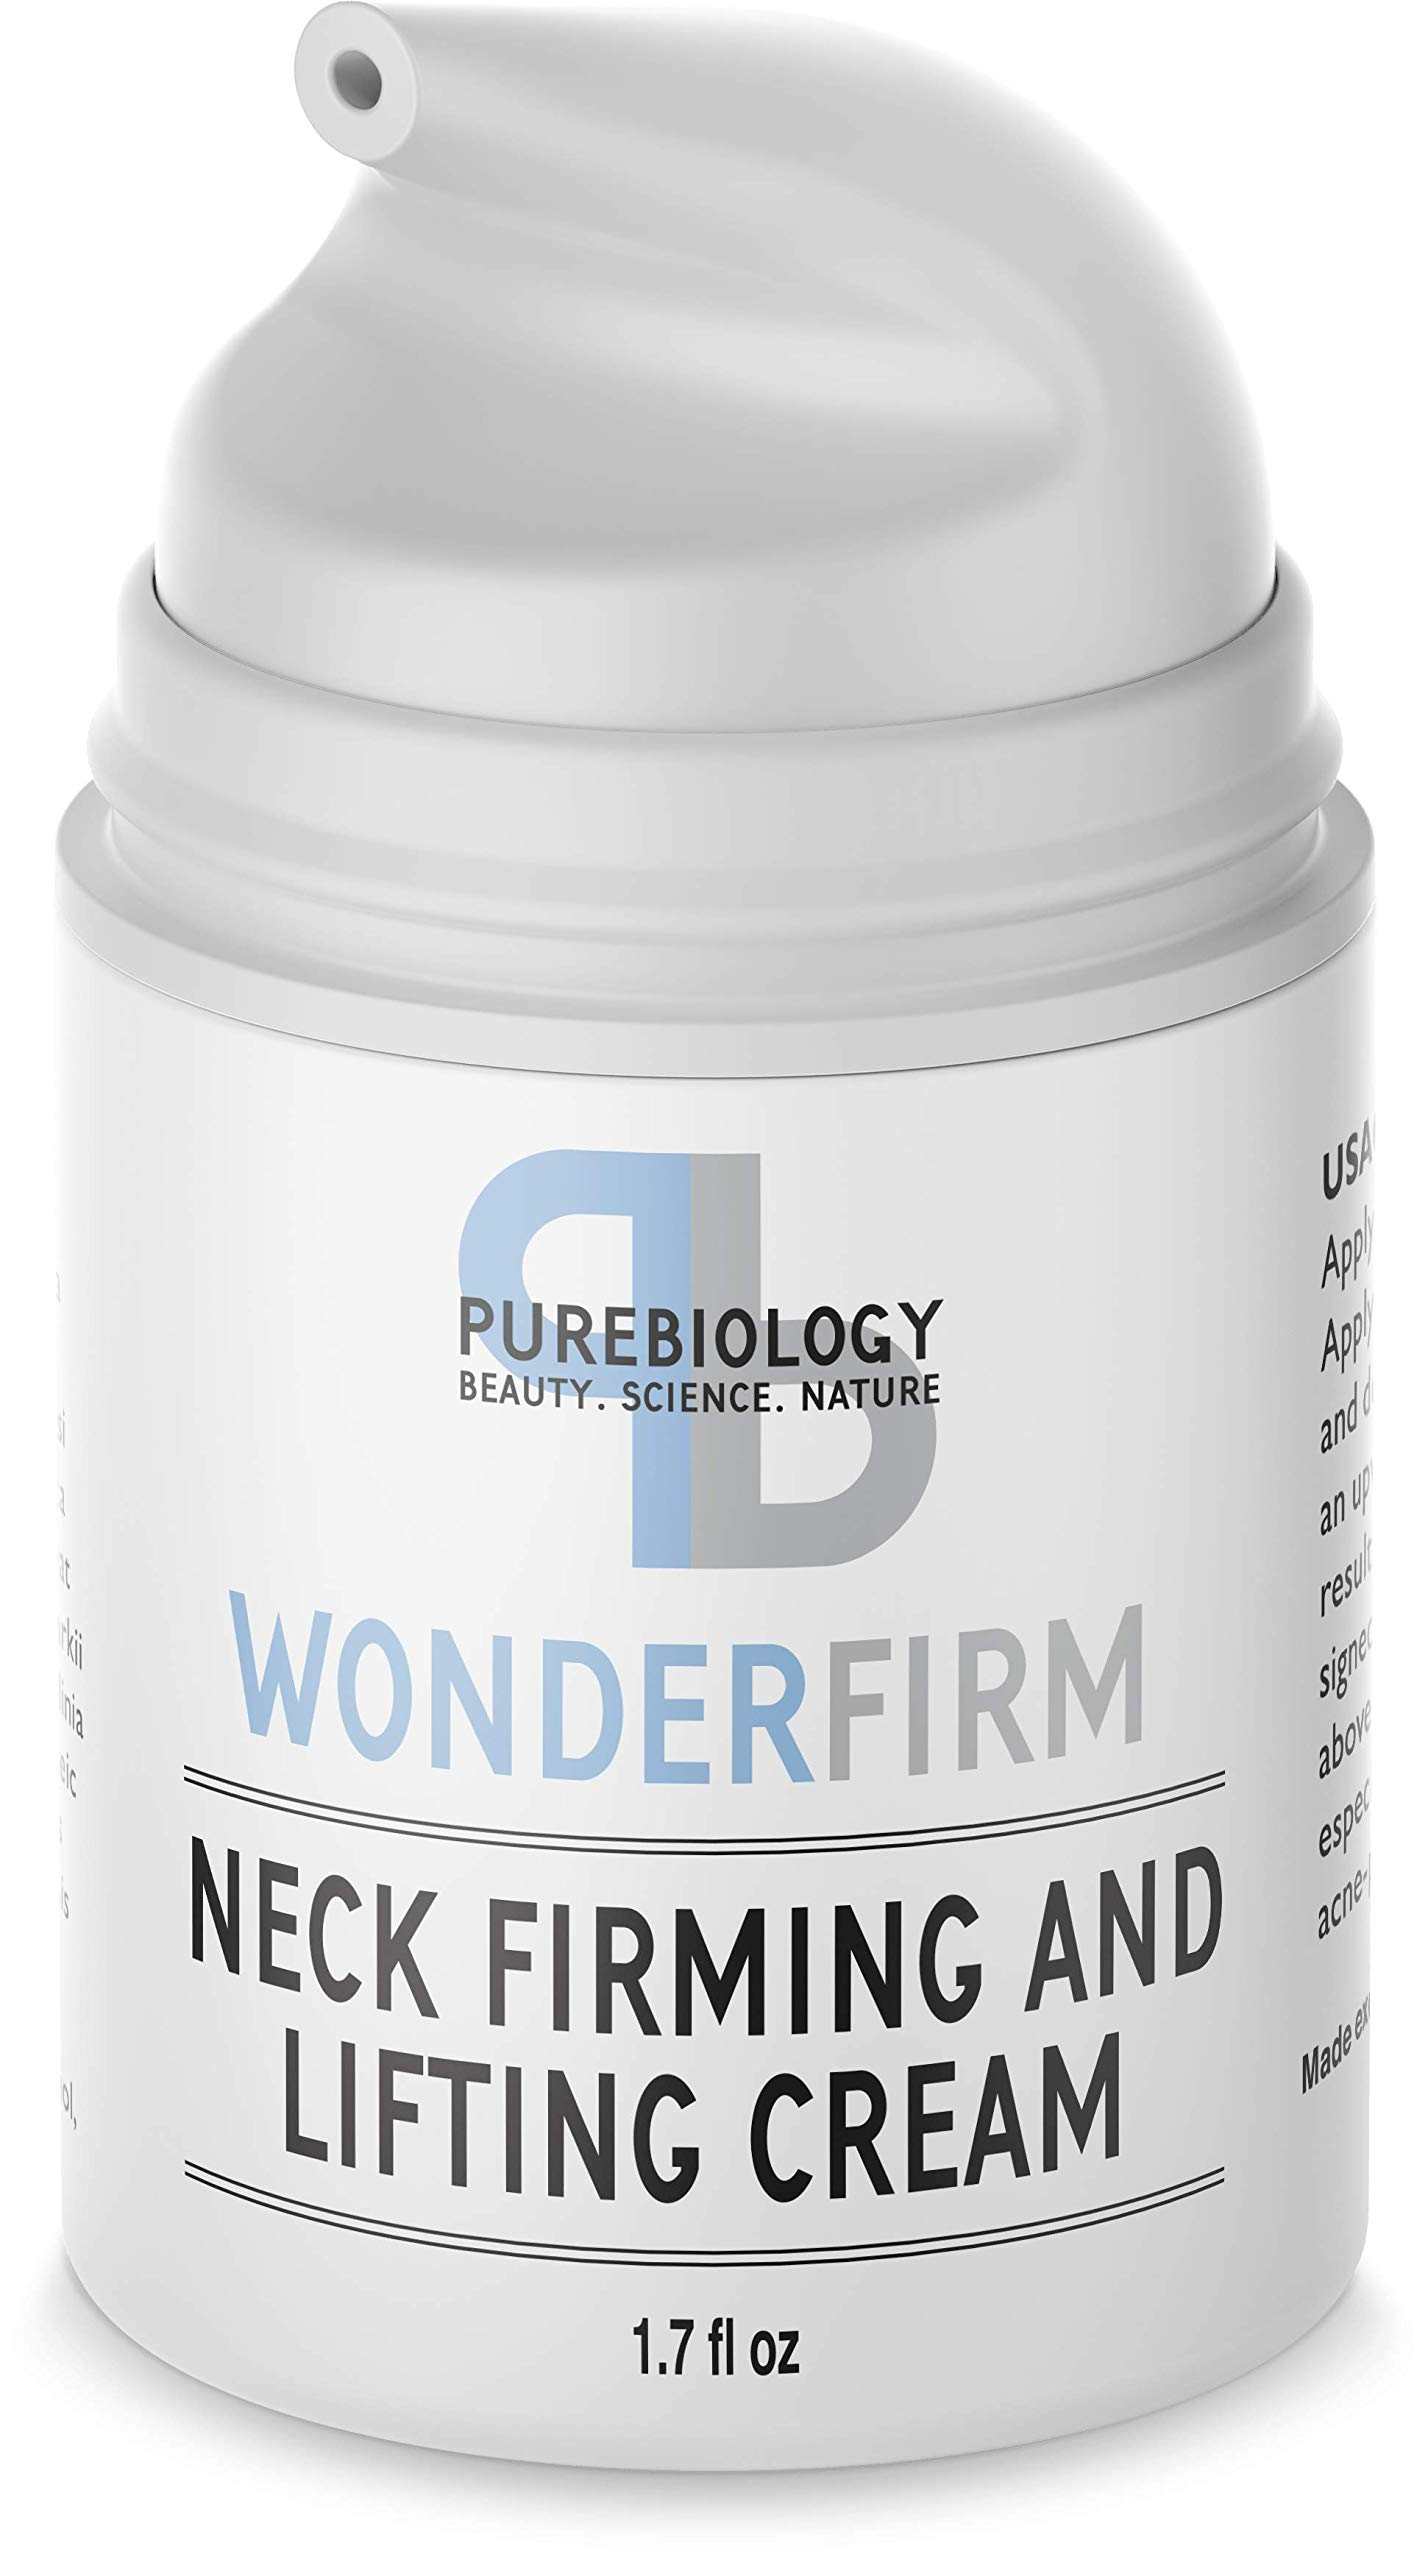 Neck Firming Cream with Natural Anti Aging Oils, Vitamins C & E, Hyaluronic Acid to Reduce Appearance of Wrinkles, Fine Lines & Dark Spots - Neck, Chest & Décolleté Skin Care for Men & Women by Pure Biology